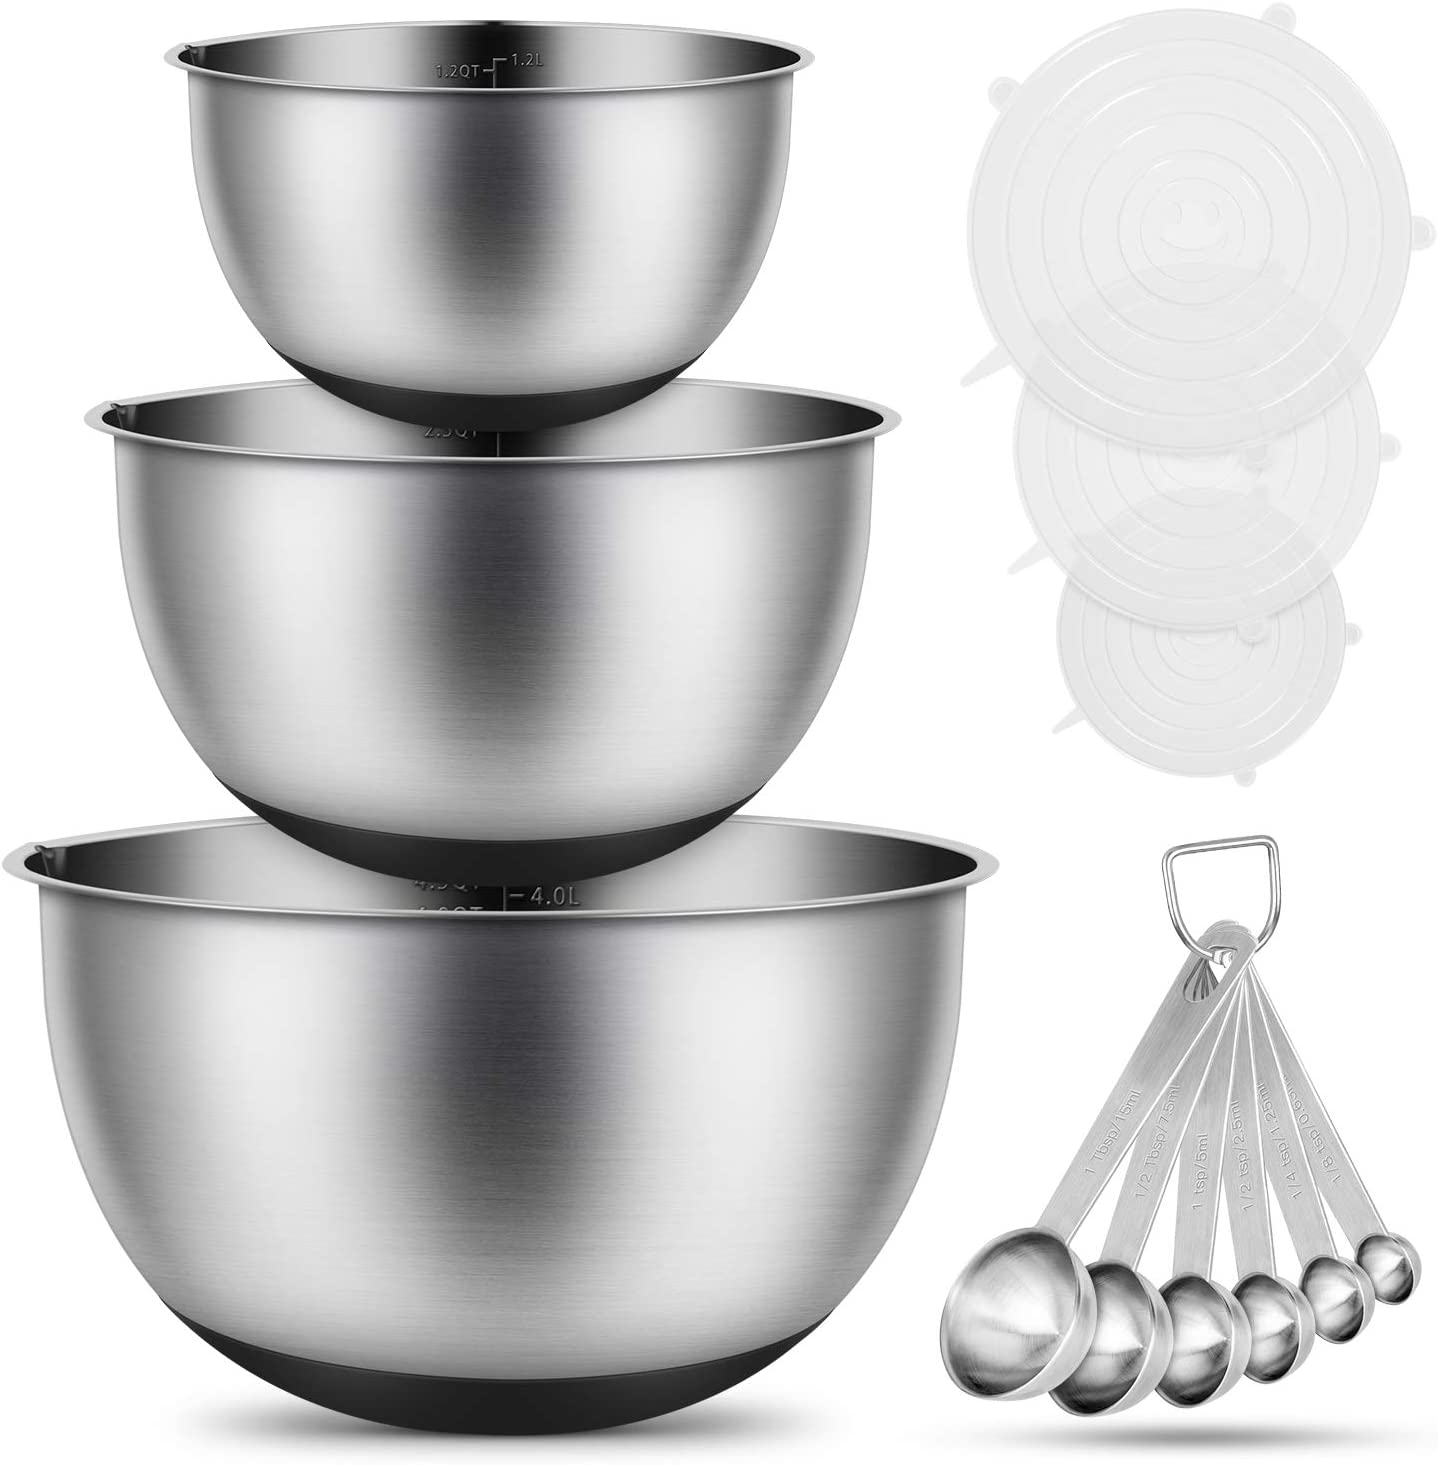 Stainless Steel Mixing Bowls Airt Save money Kitchen Max 58% OFF Set with